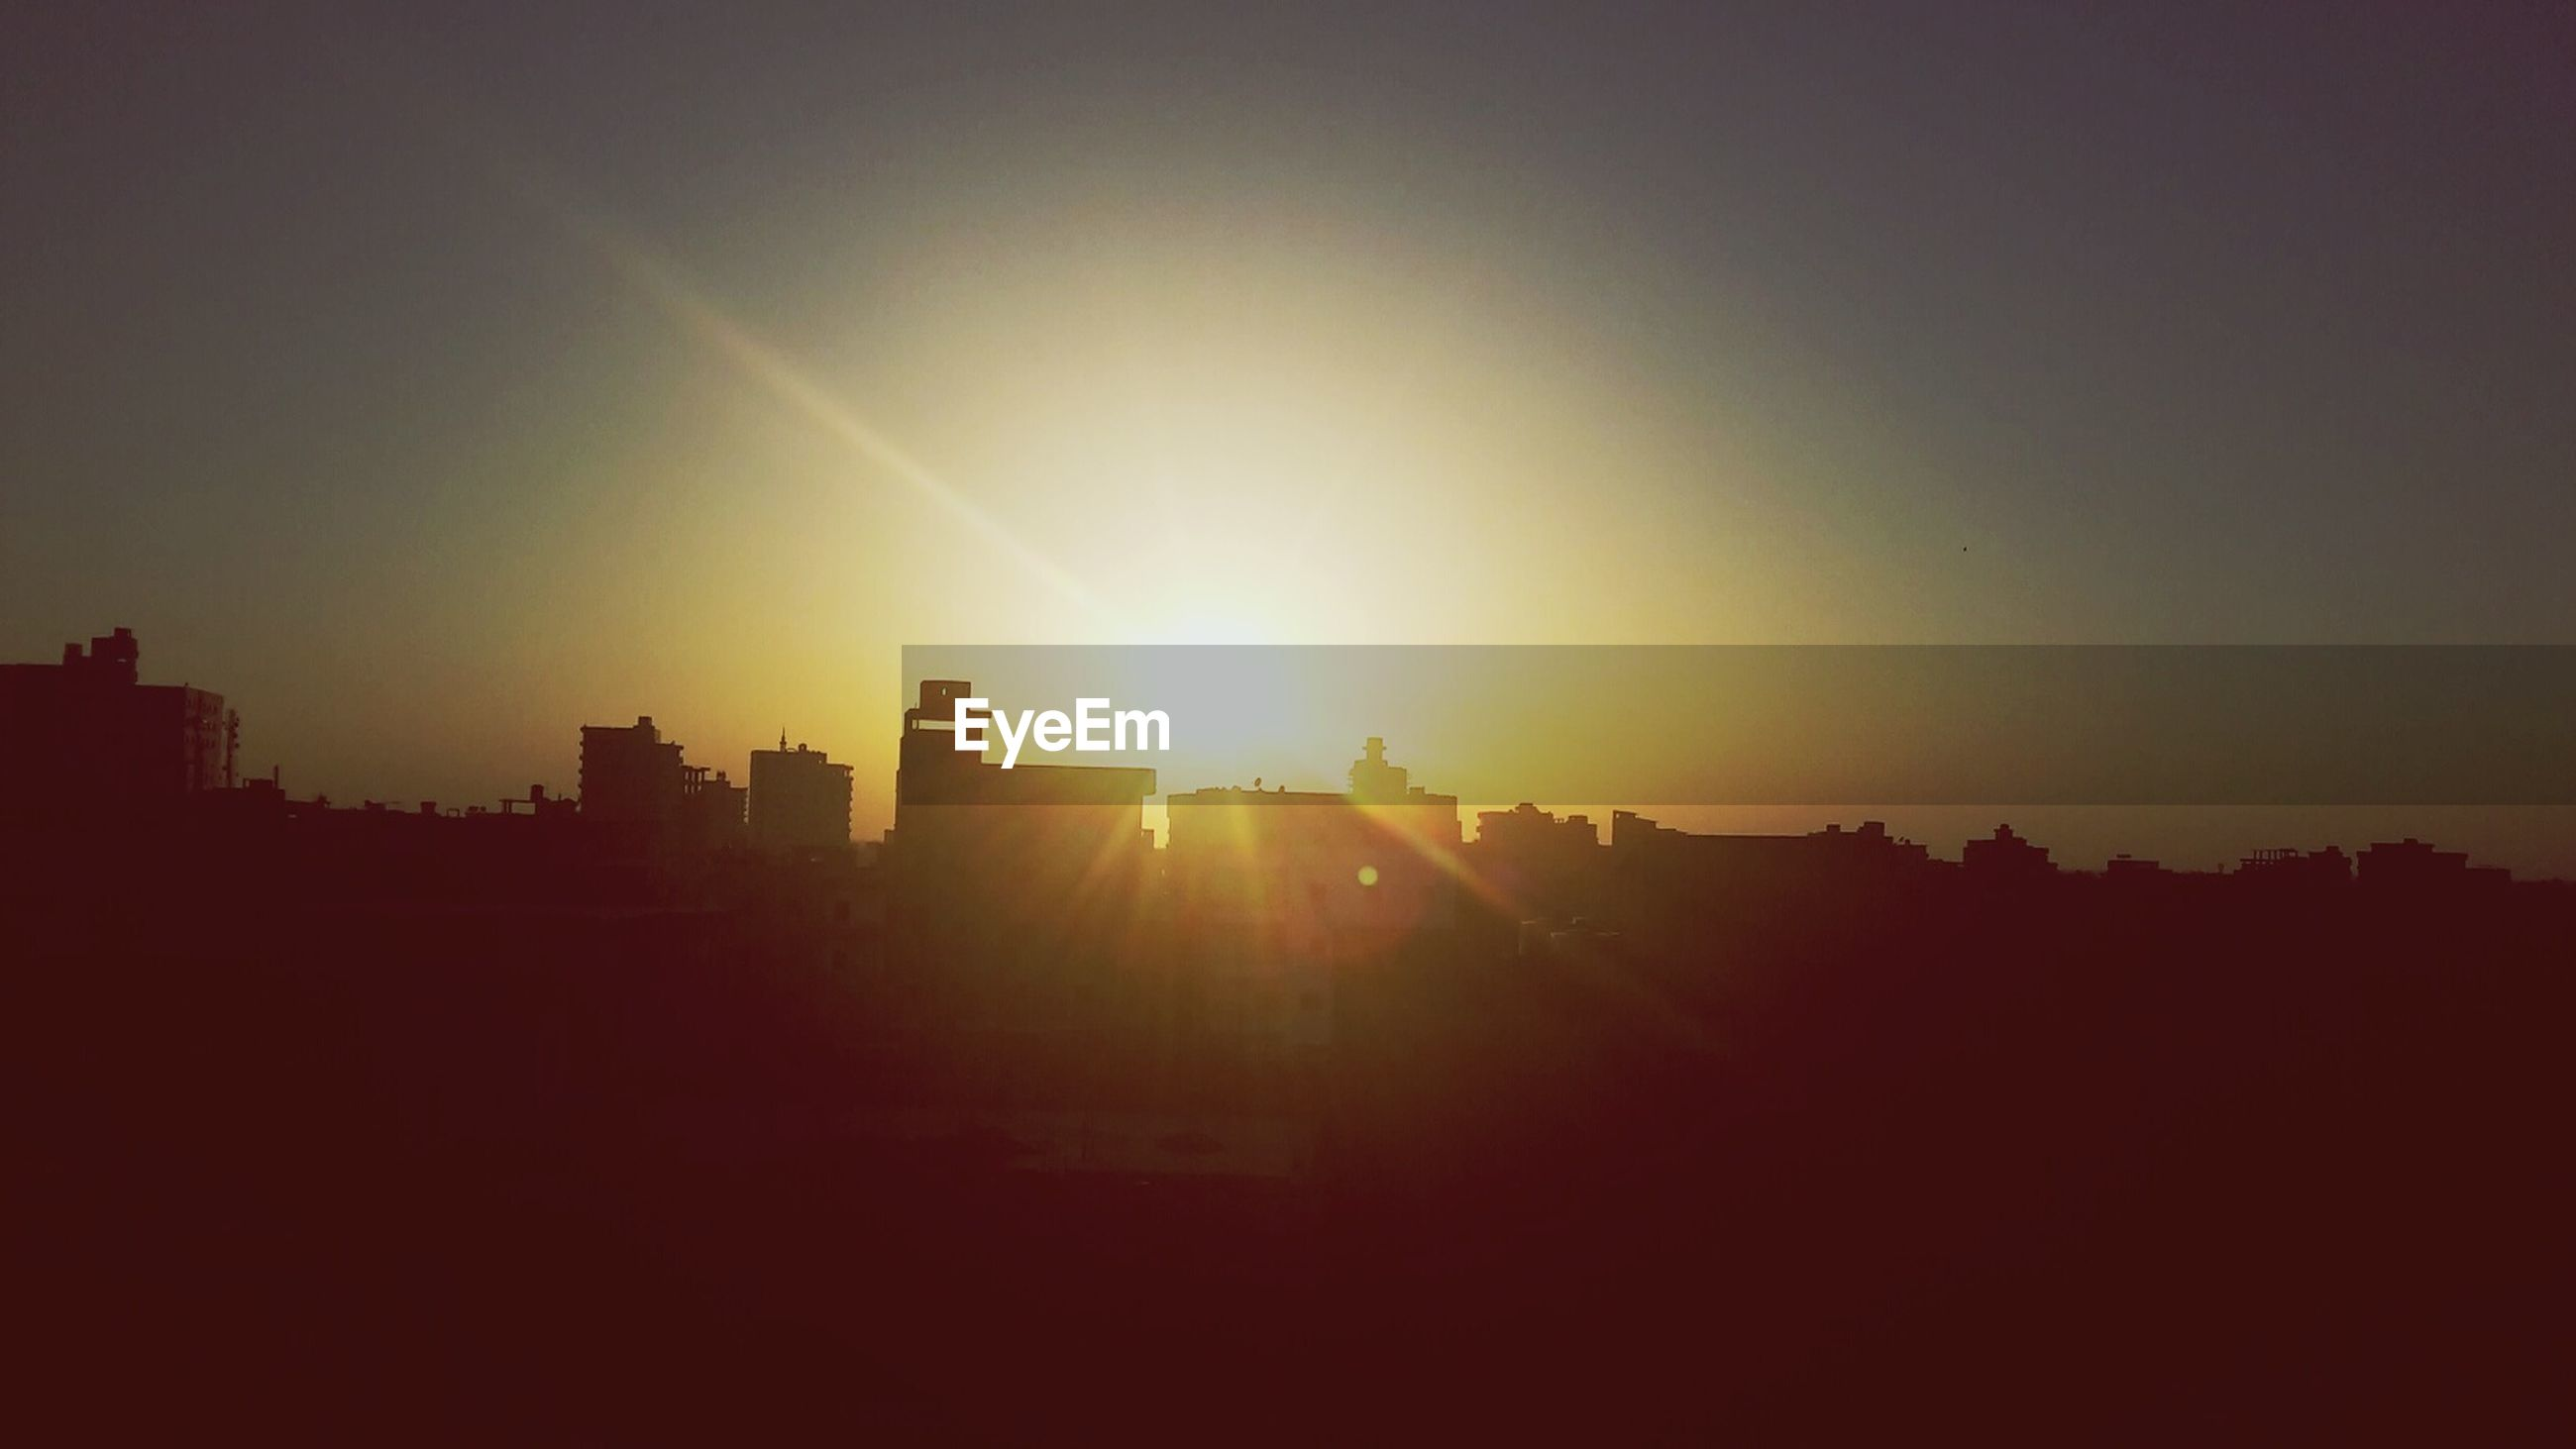 sunset, sun, silhouette, building exterior, built structure, architecture, sunlight, sunbeam, copy space, orange color, lens flare, sky, clear sky, city, outdoors, nature, beauty in nature, building, no people, dark